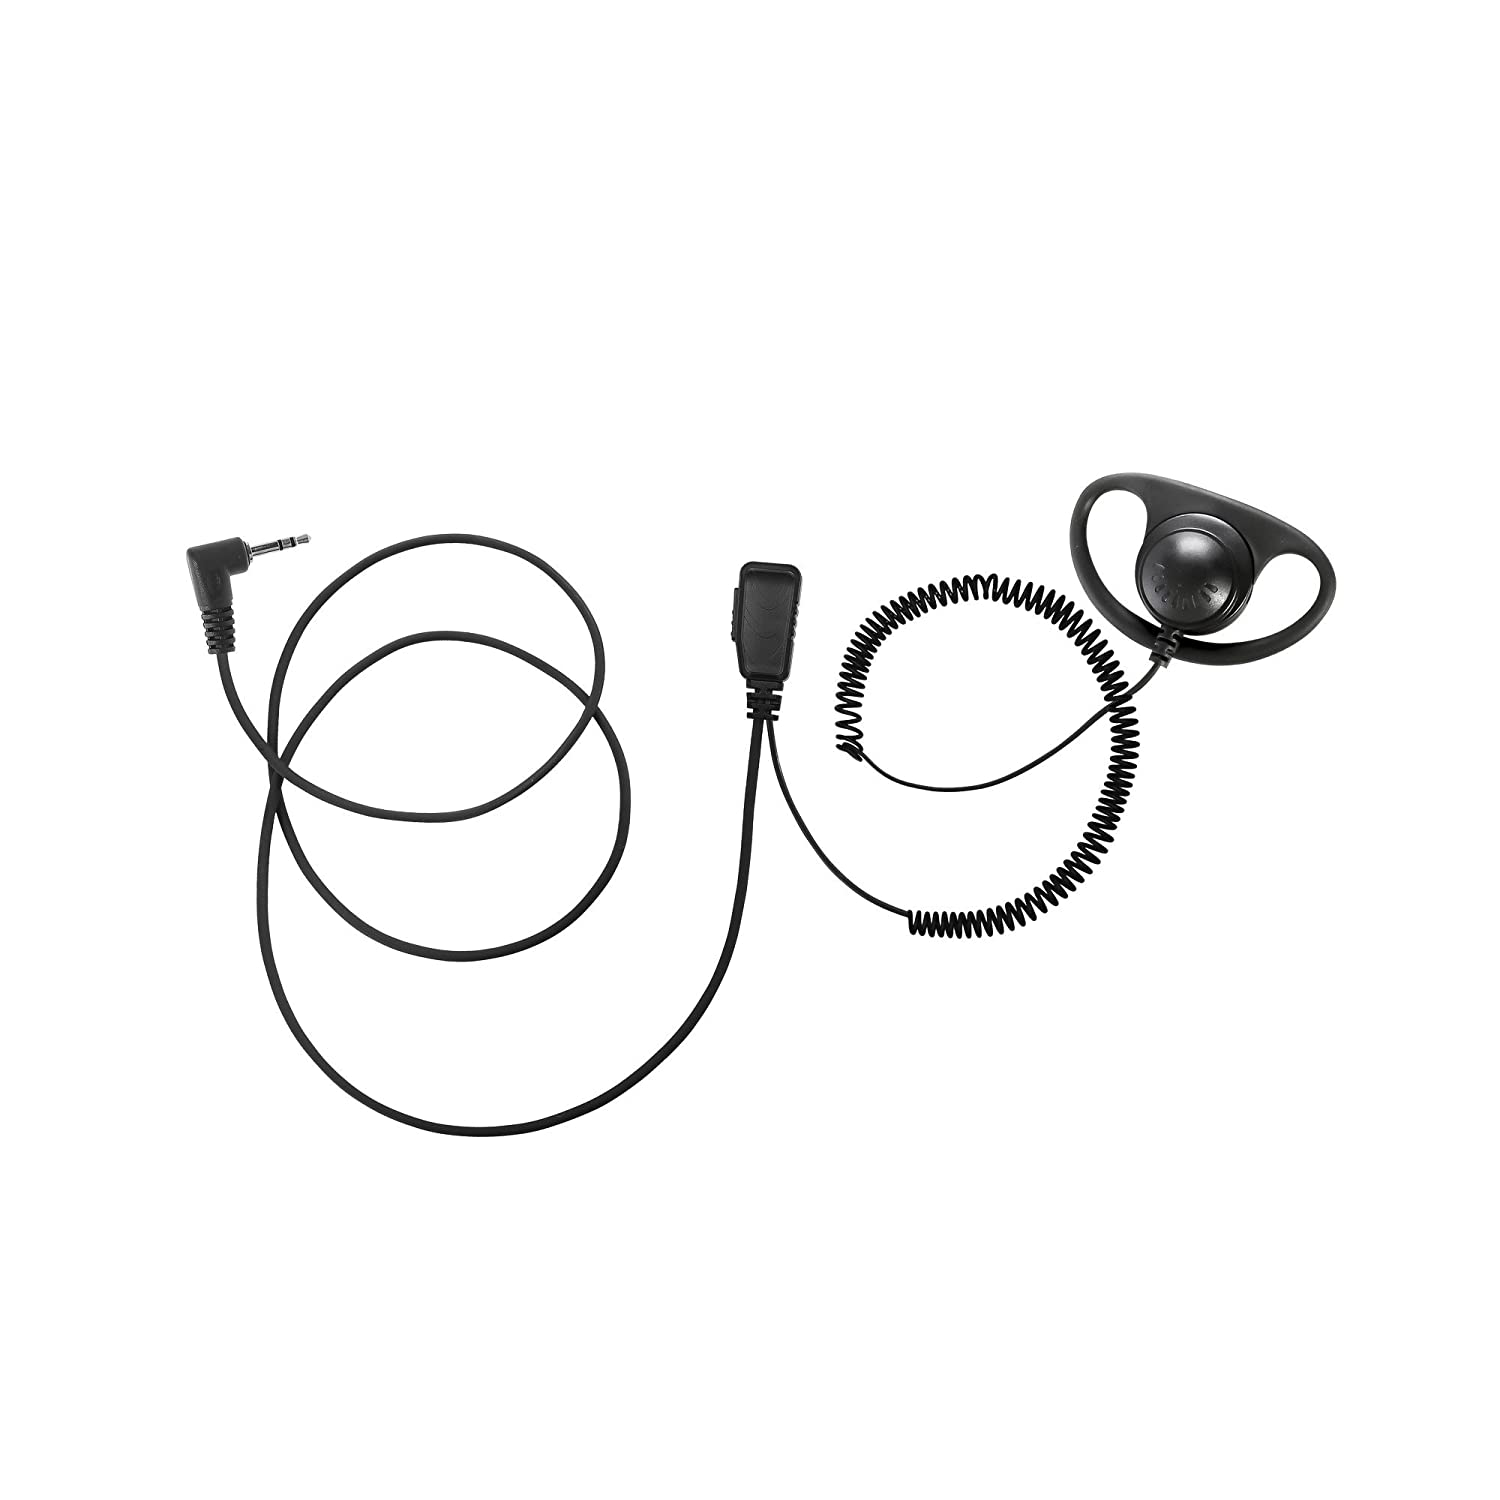 BOMMEOW BDS15-M2 D Shape Earhanger D-Style Earpiece for Motorola Talkabout TLKR T3 T60 T5512 MR350R T41